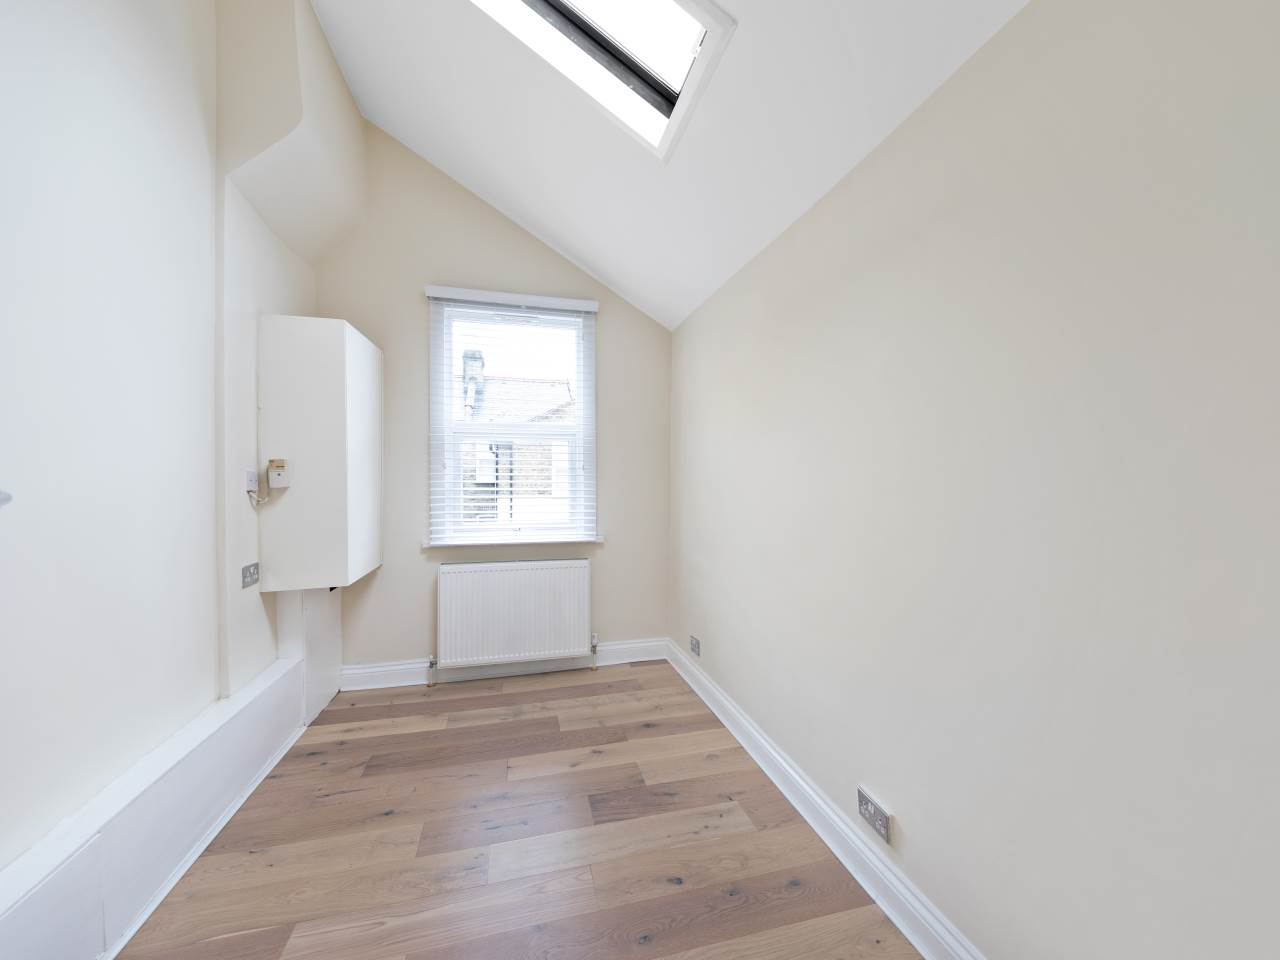 3 bed house for sale in Exning Road , Canning Town  10